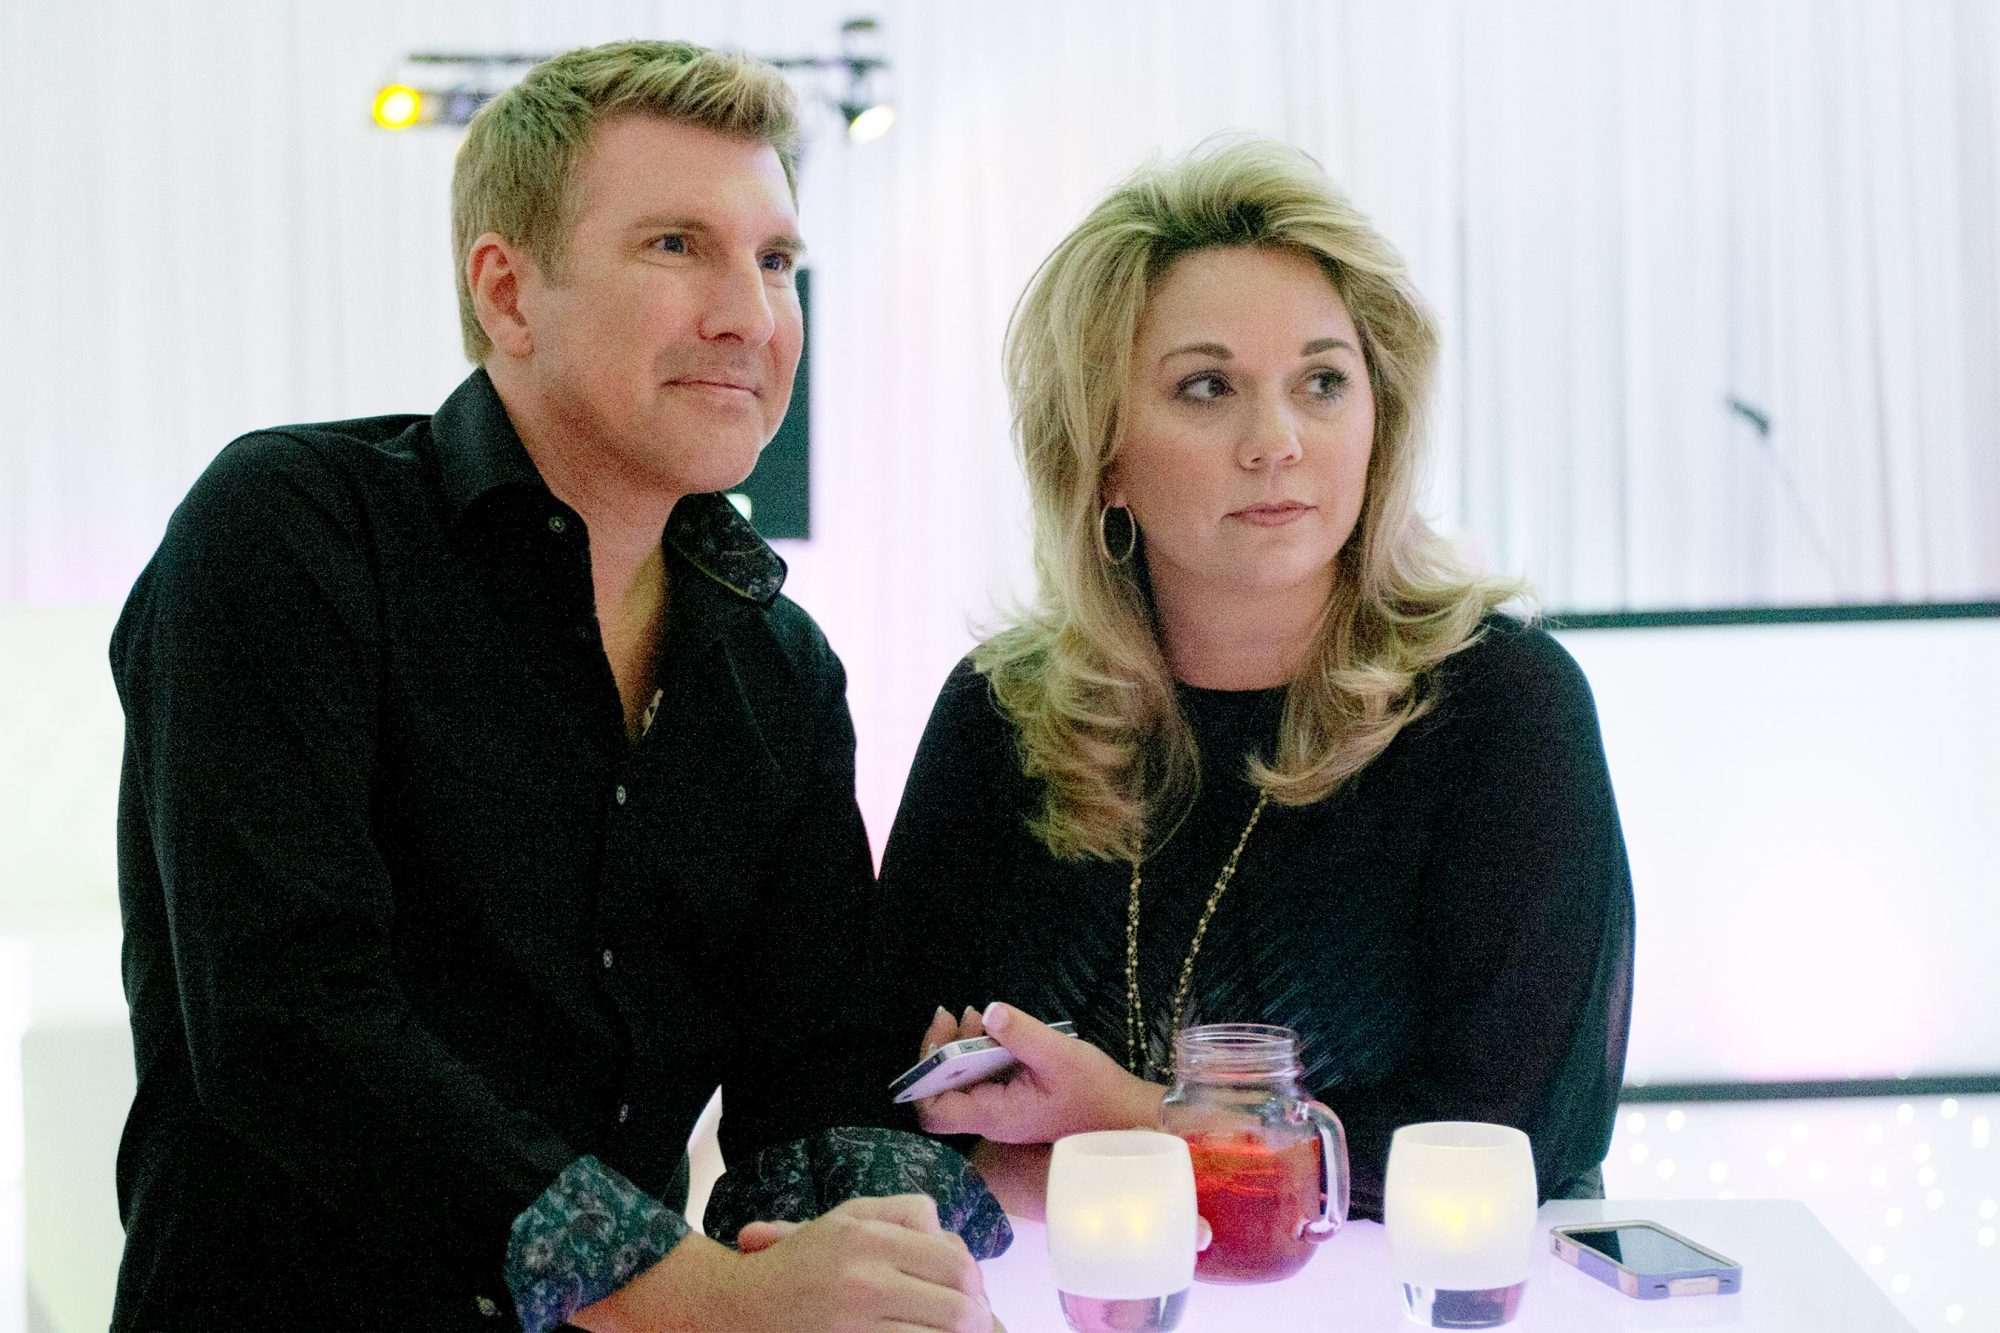 "CHRISLEY KNOWS BEST --""Not So Sweet Sixteen"" Episode 102 -- Pictured: (l-r) Todd Chrisley, Julie Chrisley -- (Photo by: Wilford Harewood/USA Network/NBCU Photo Bank via Getty Images)"